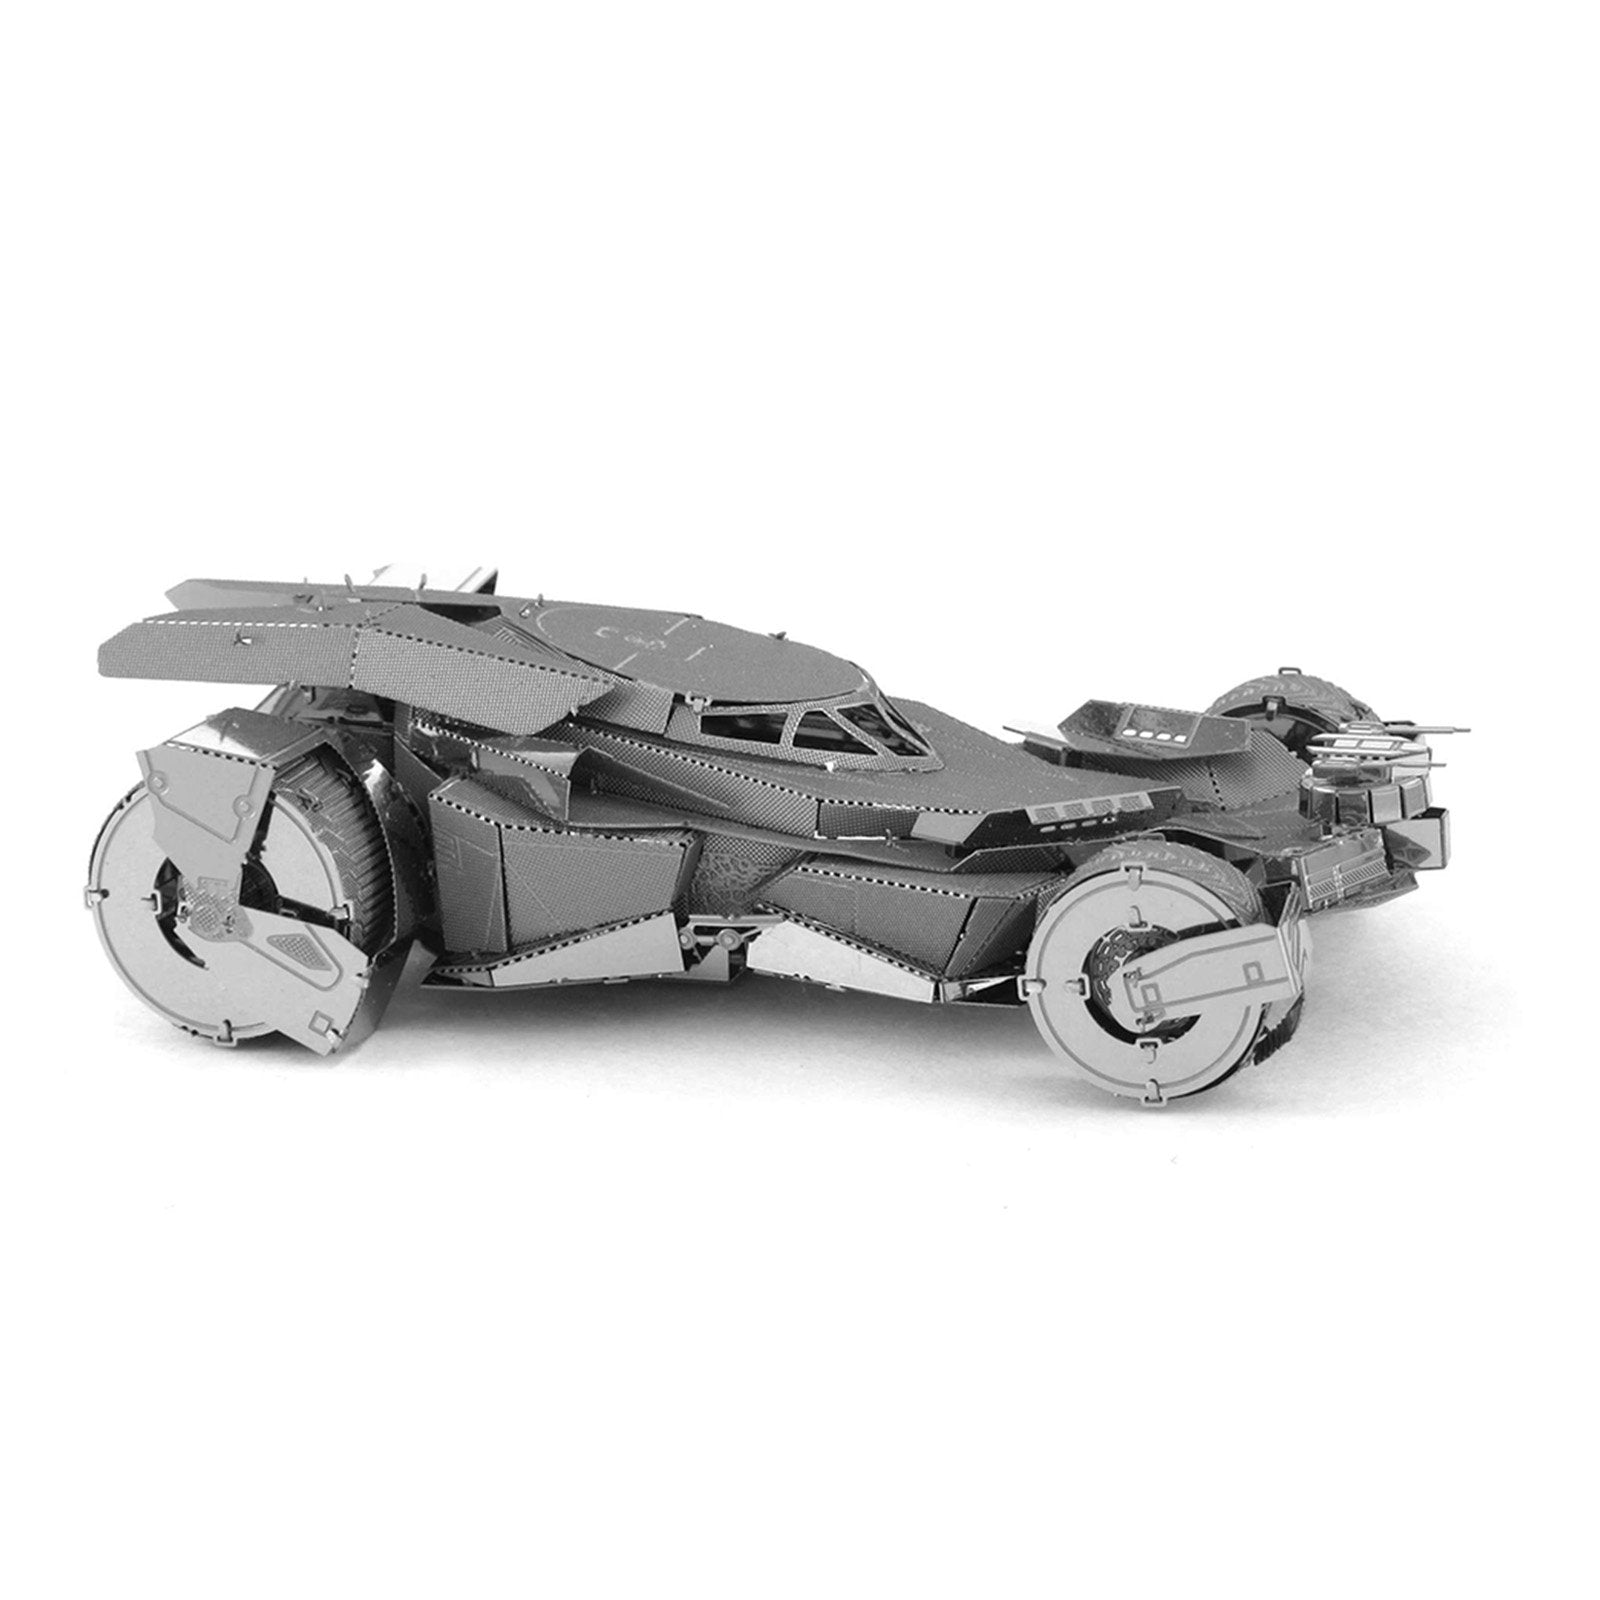 Limited Edition Batman And Robin Batmobile 3D Action Assembly Kit Model Car